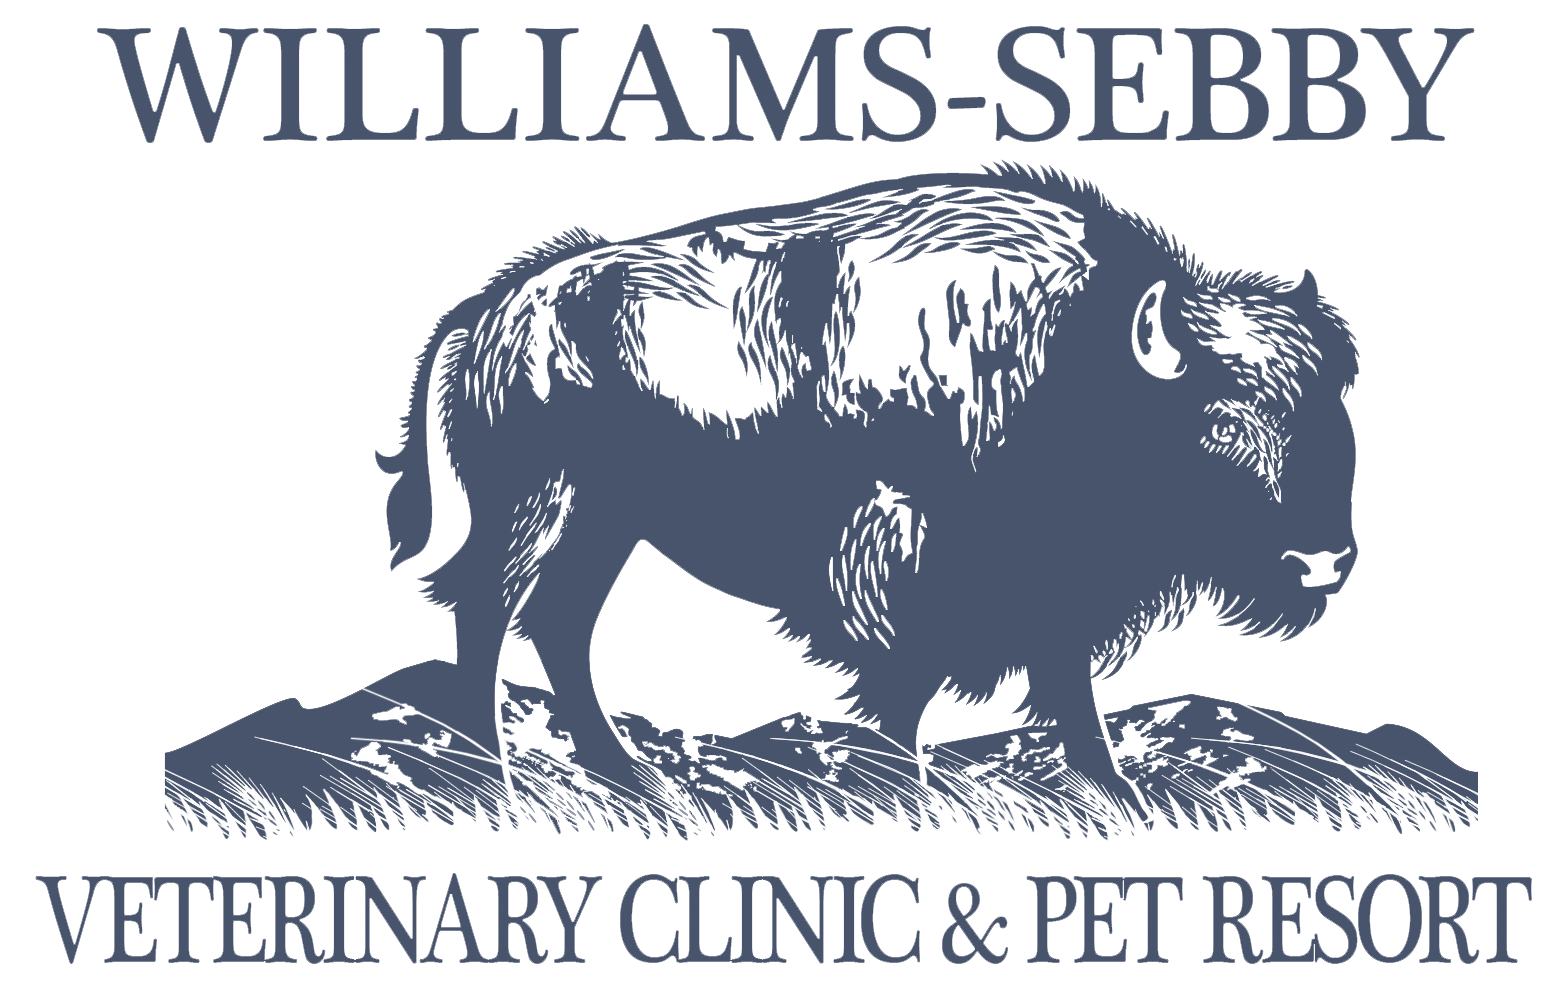 Williams-Sebby Vet Clinic & Pet Resort